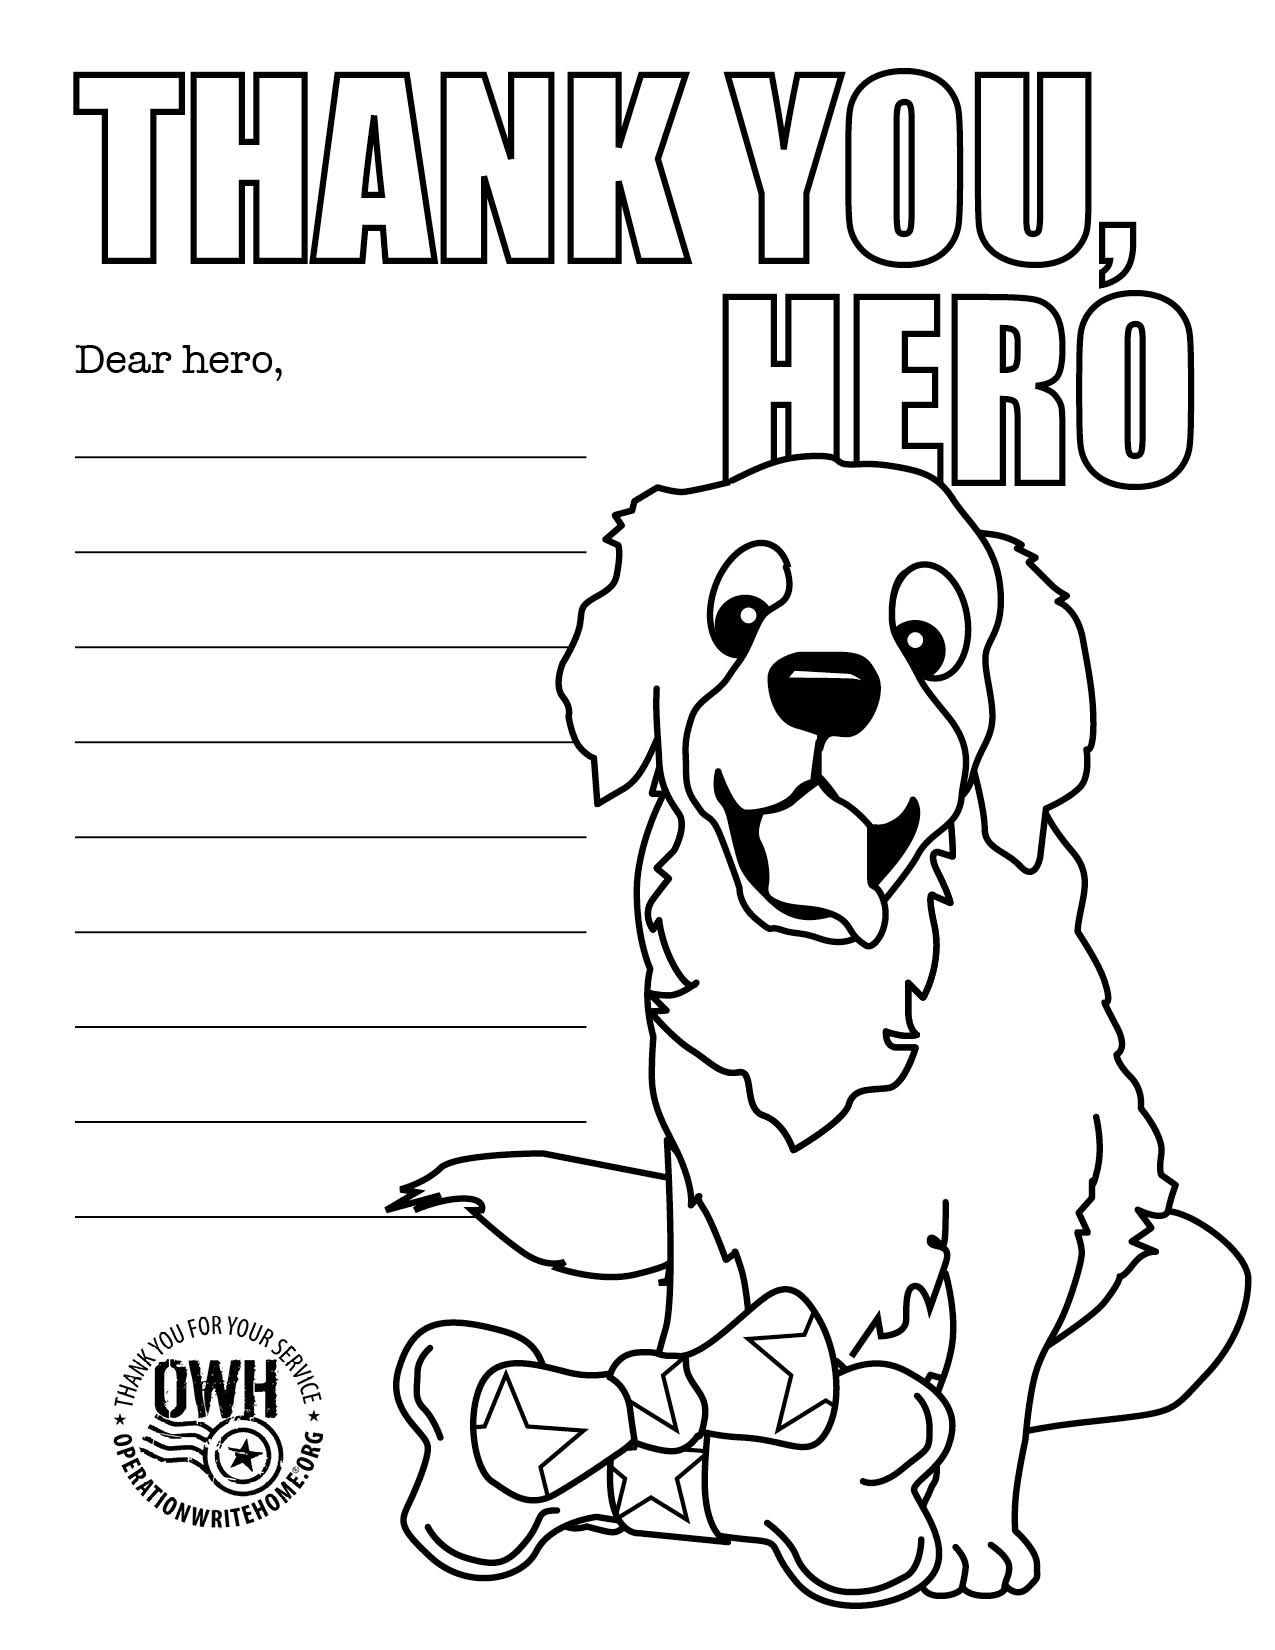 Coloring Pages Veterans Coloring Pages Free 1000 images about kids worksheets on pinterest veterans day coloring pages and coloring